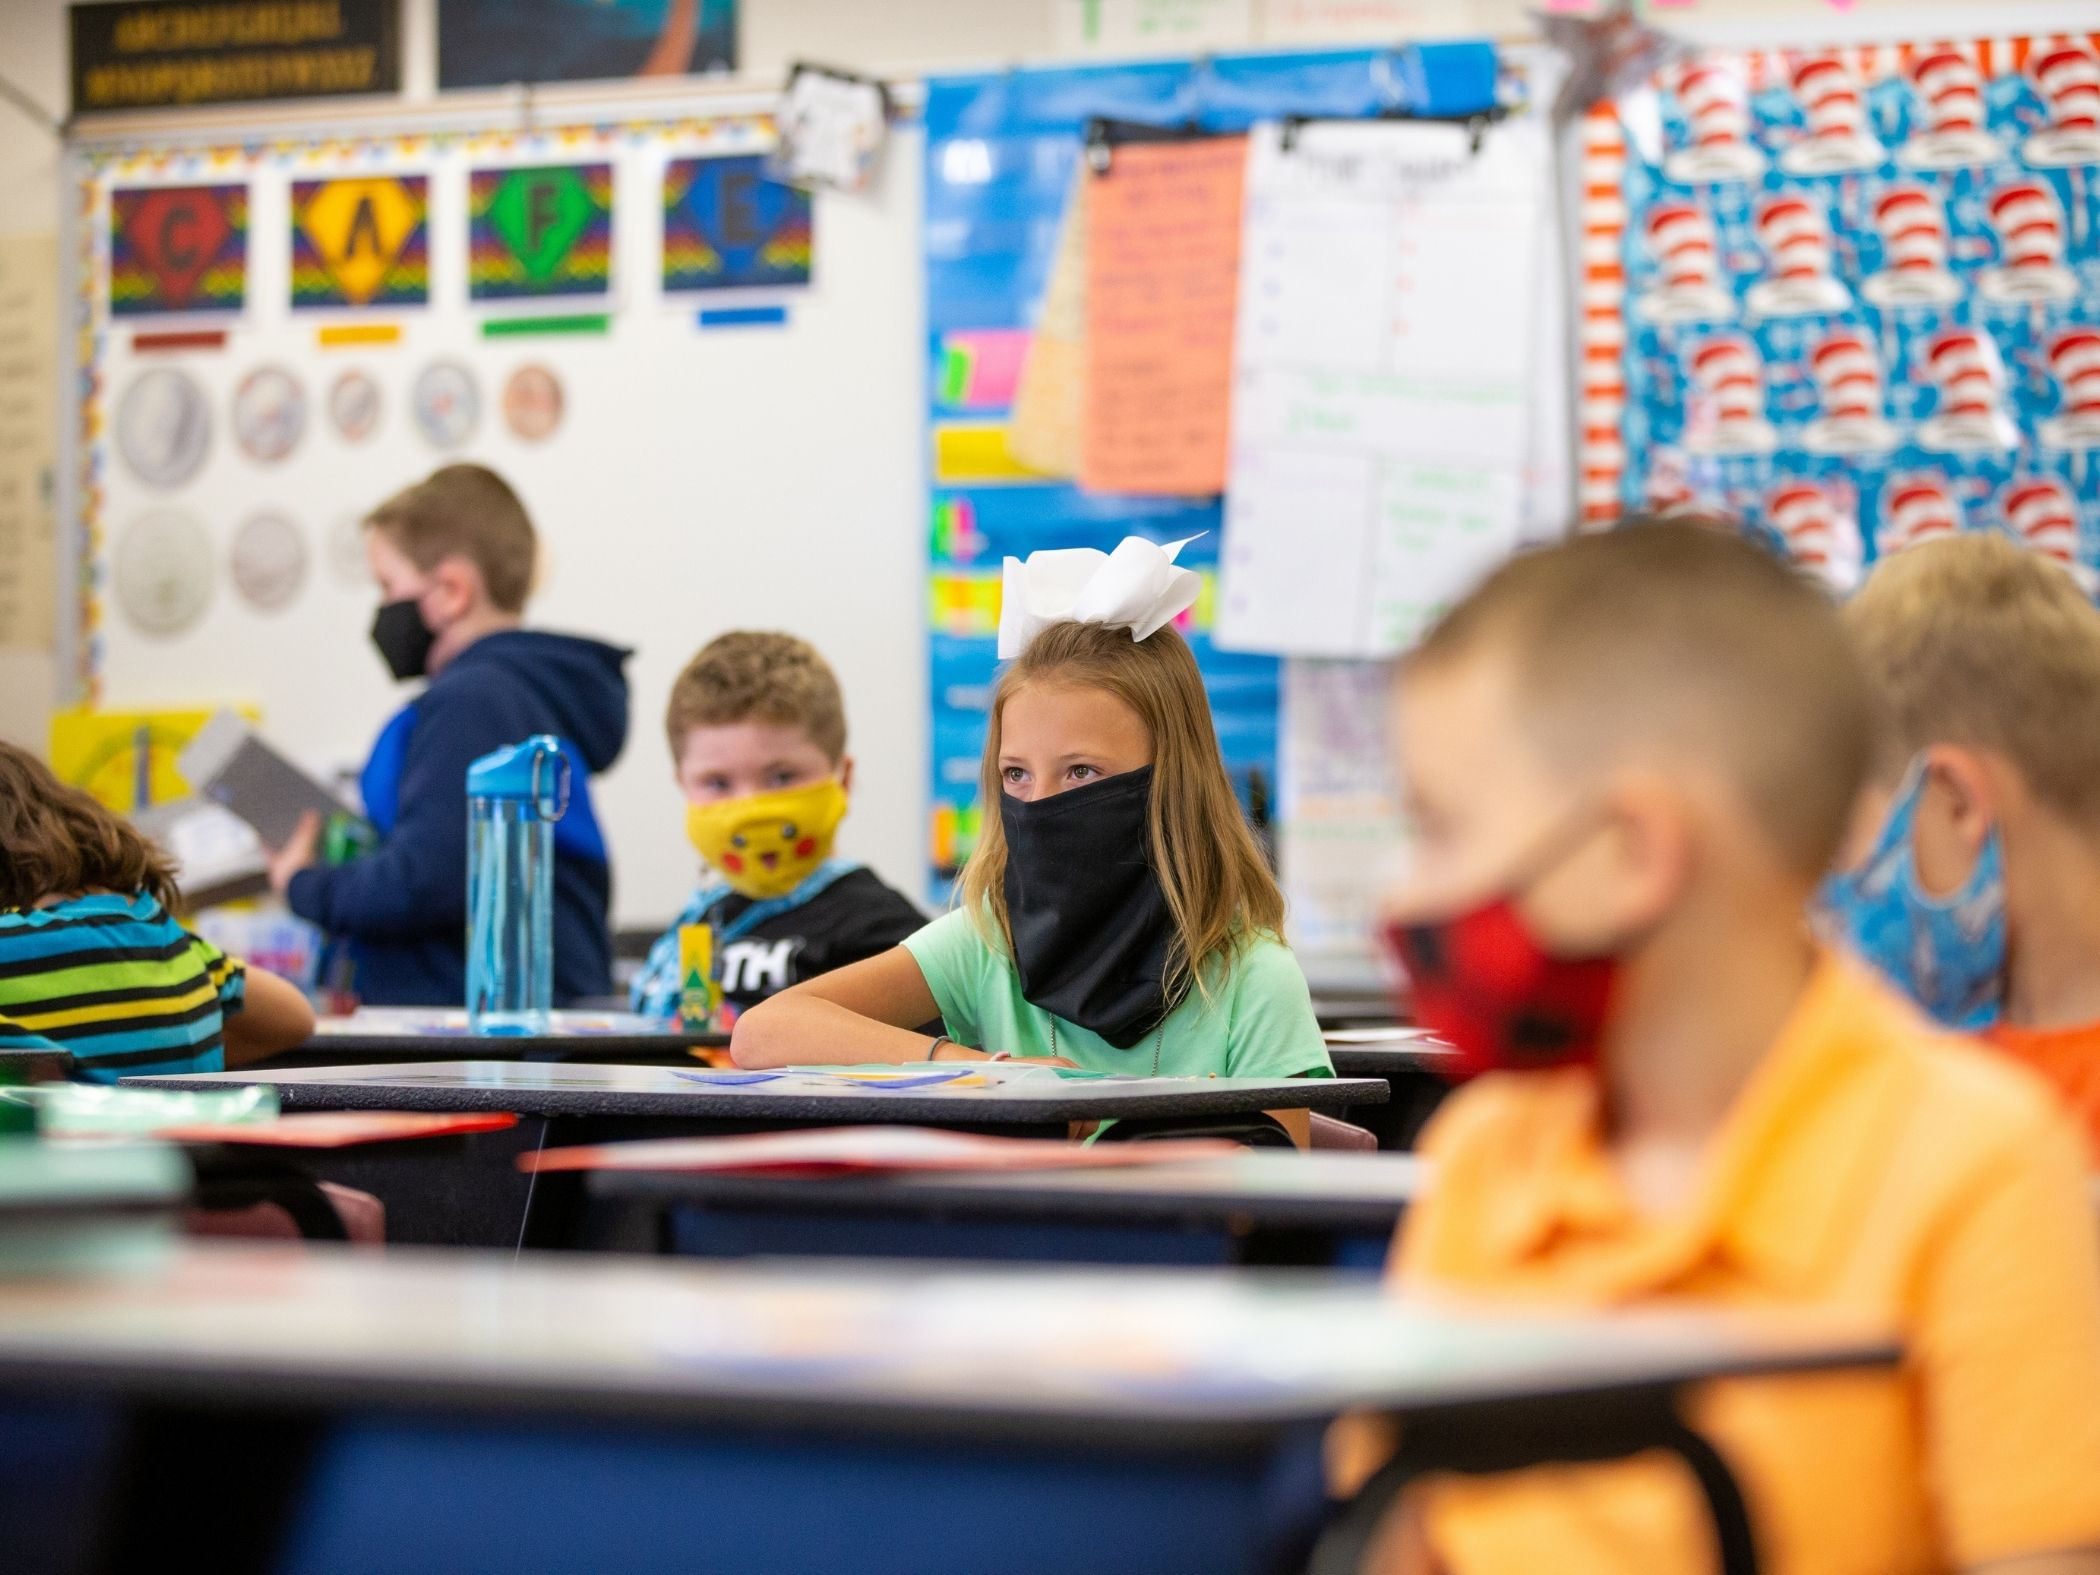 Students in class sitting at desks with masks on